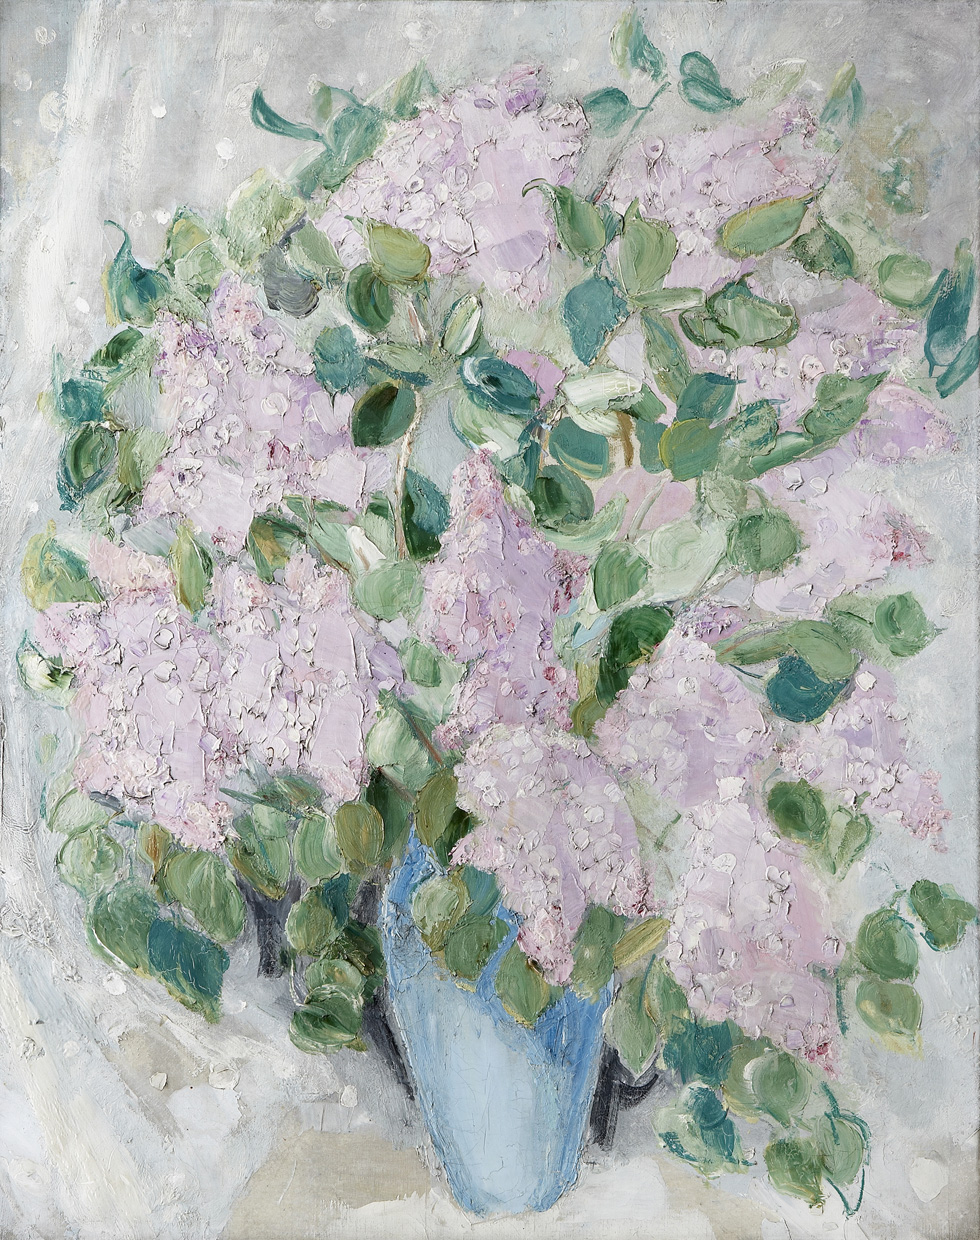 Lilas, Jacqueline Marval. Oil on canvas.